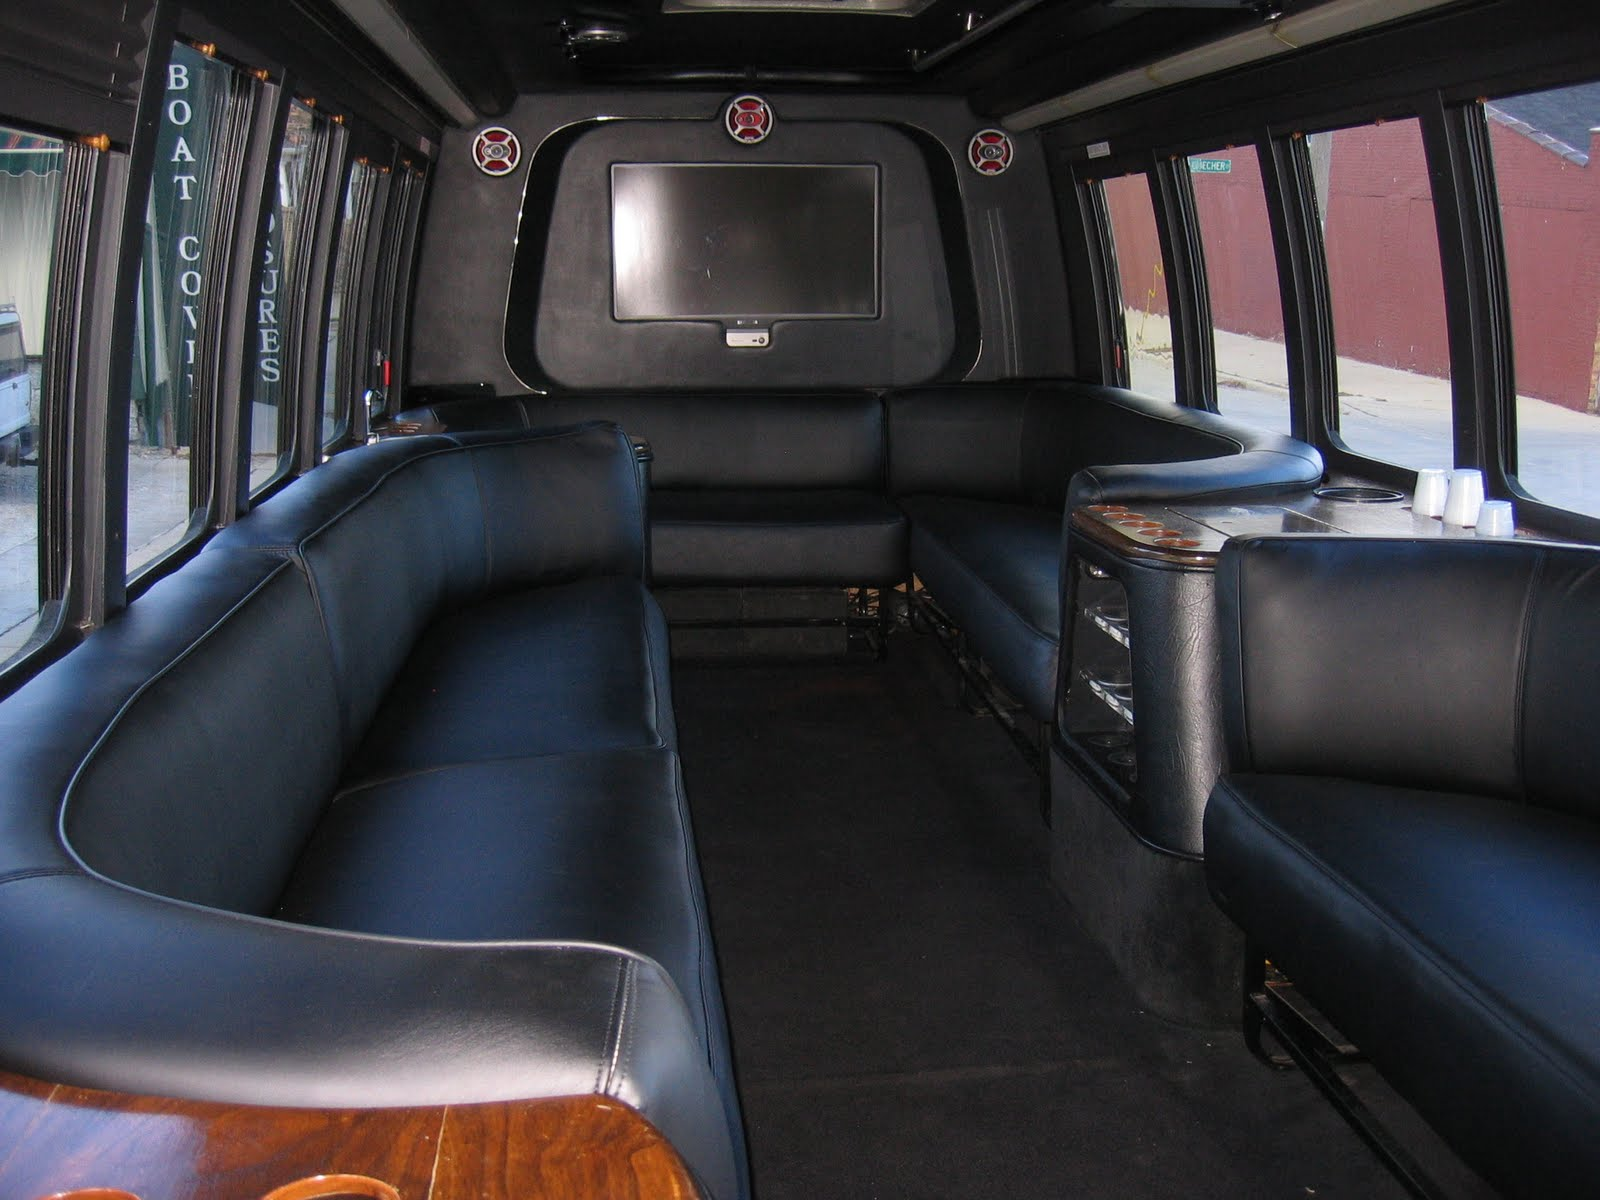 Homestyle custom upholstery and awning limo bus interior Tour bus interior design